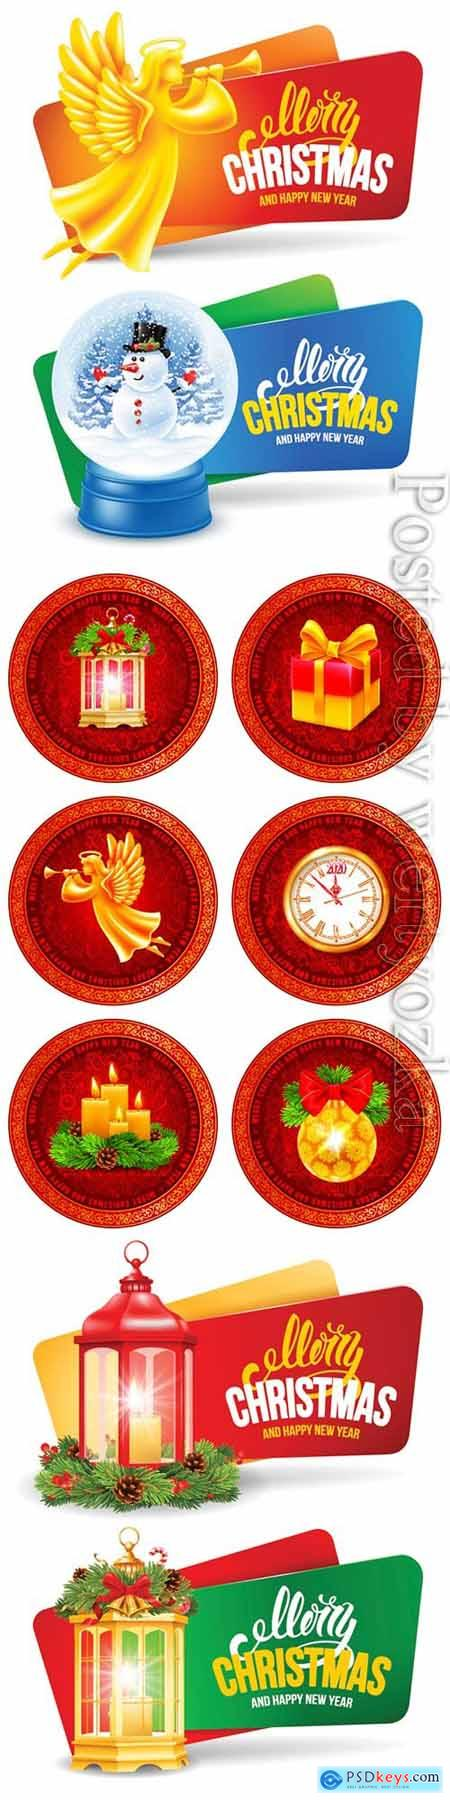 Christmas and New Year elements in vector